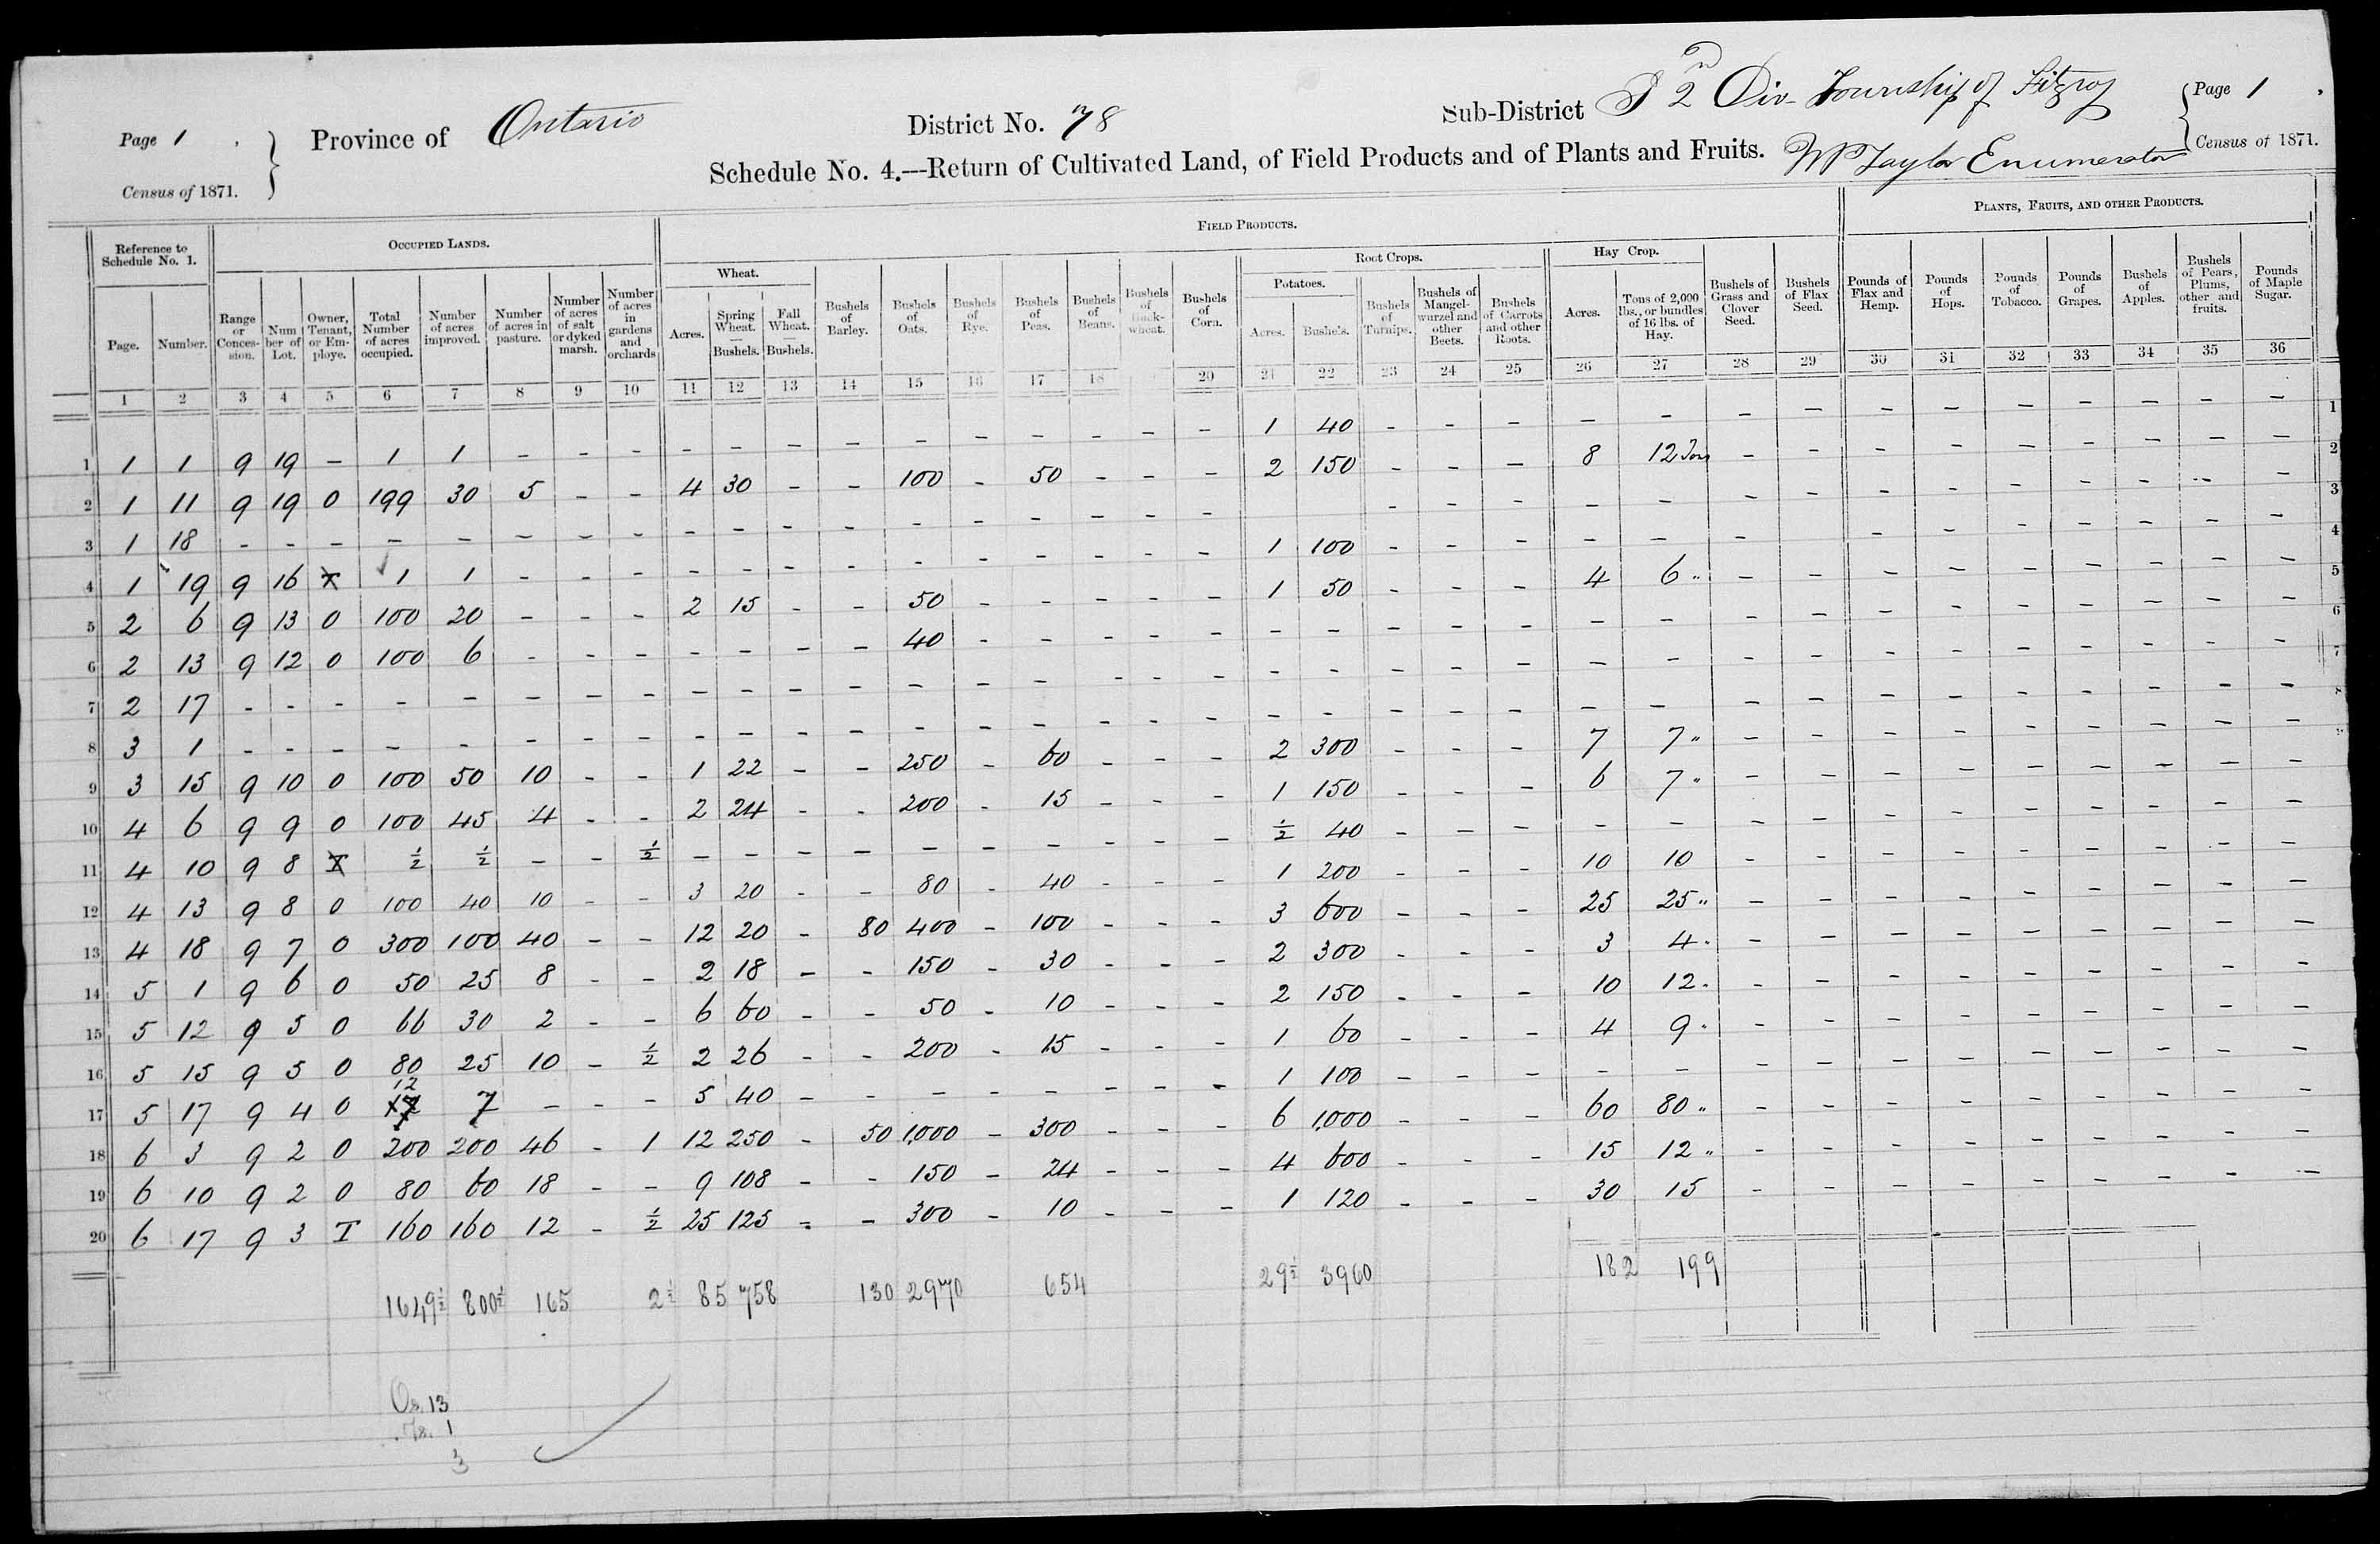 Title: Census of Canada, 1871 - Mikan Number: 142105 - Microform: c-10016